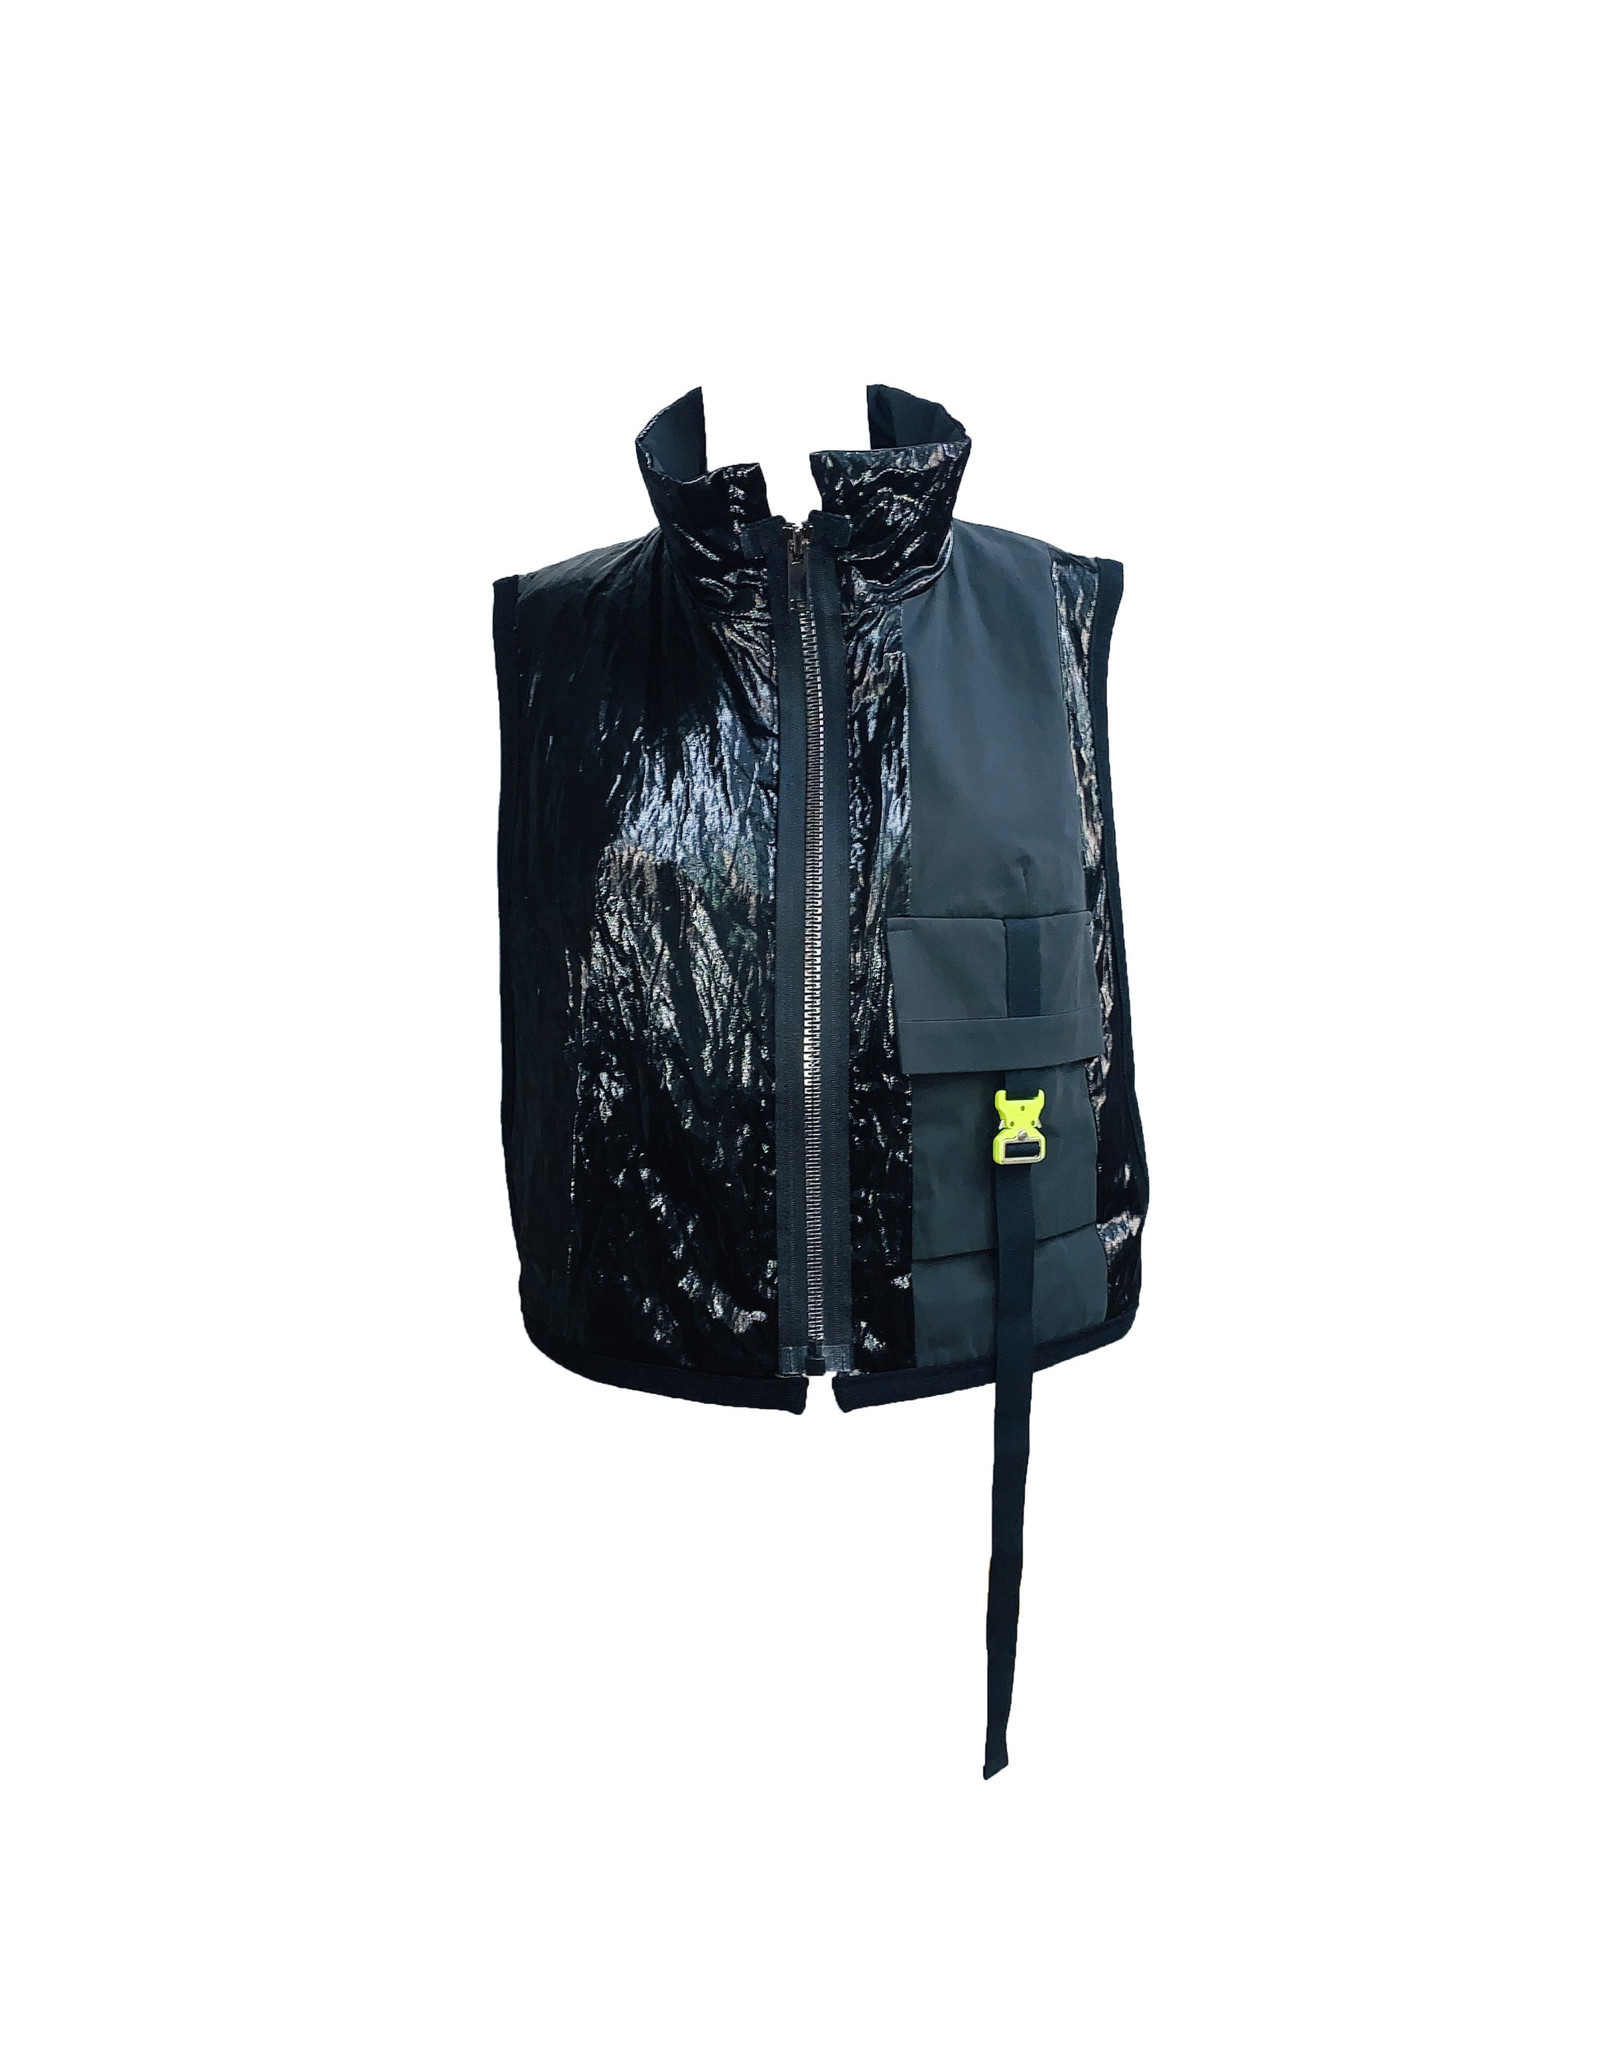 NY77 Design NY77 Zip Buckle Vest - Black